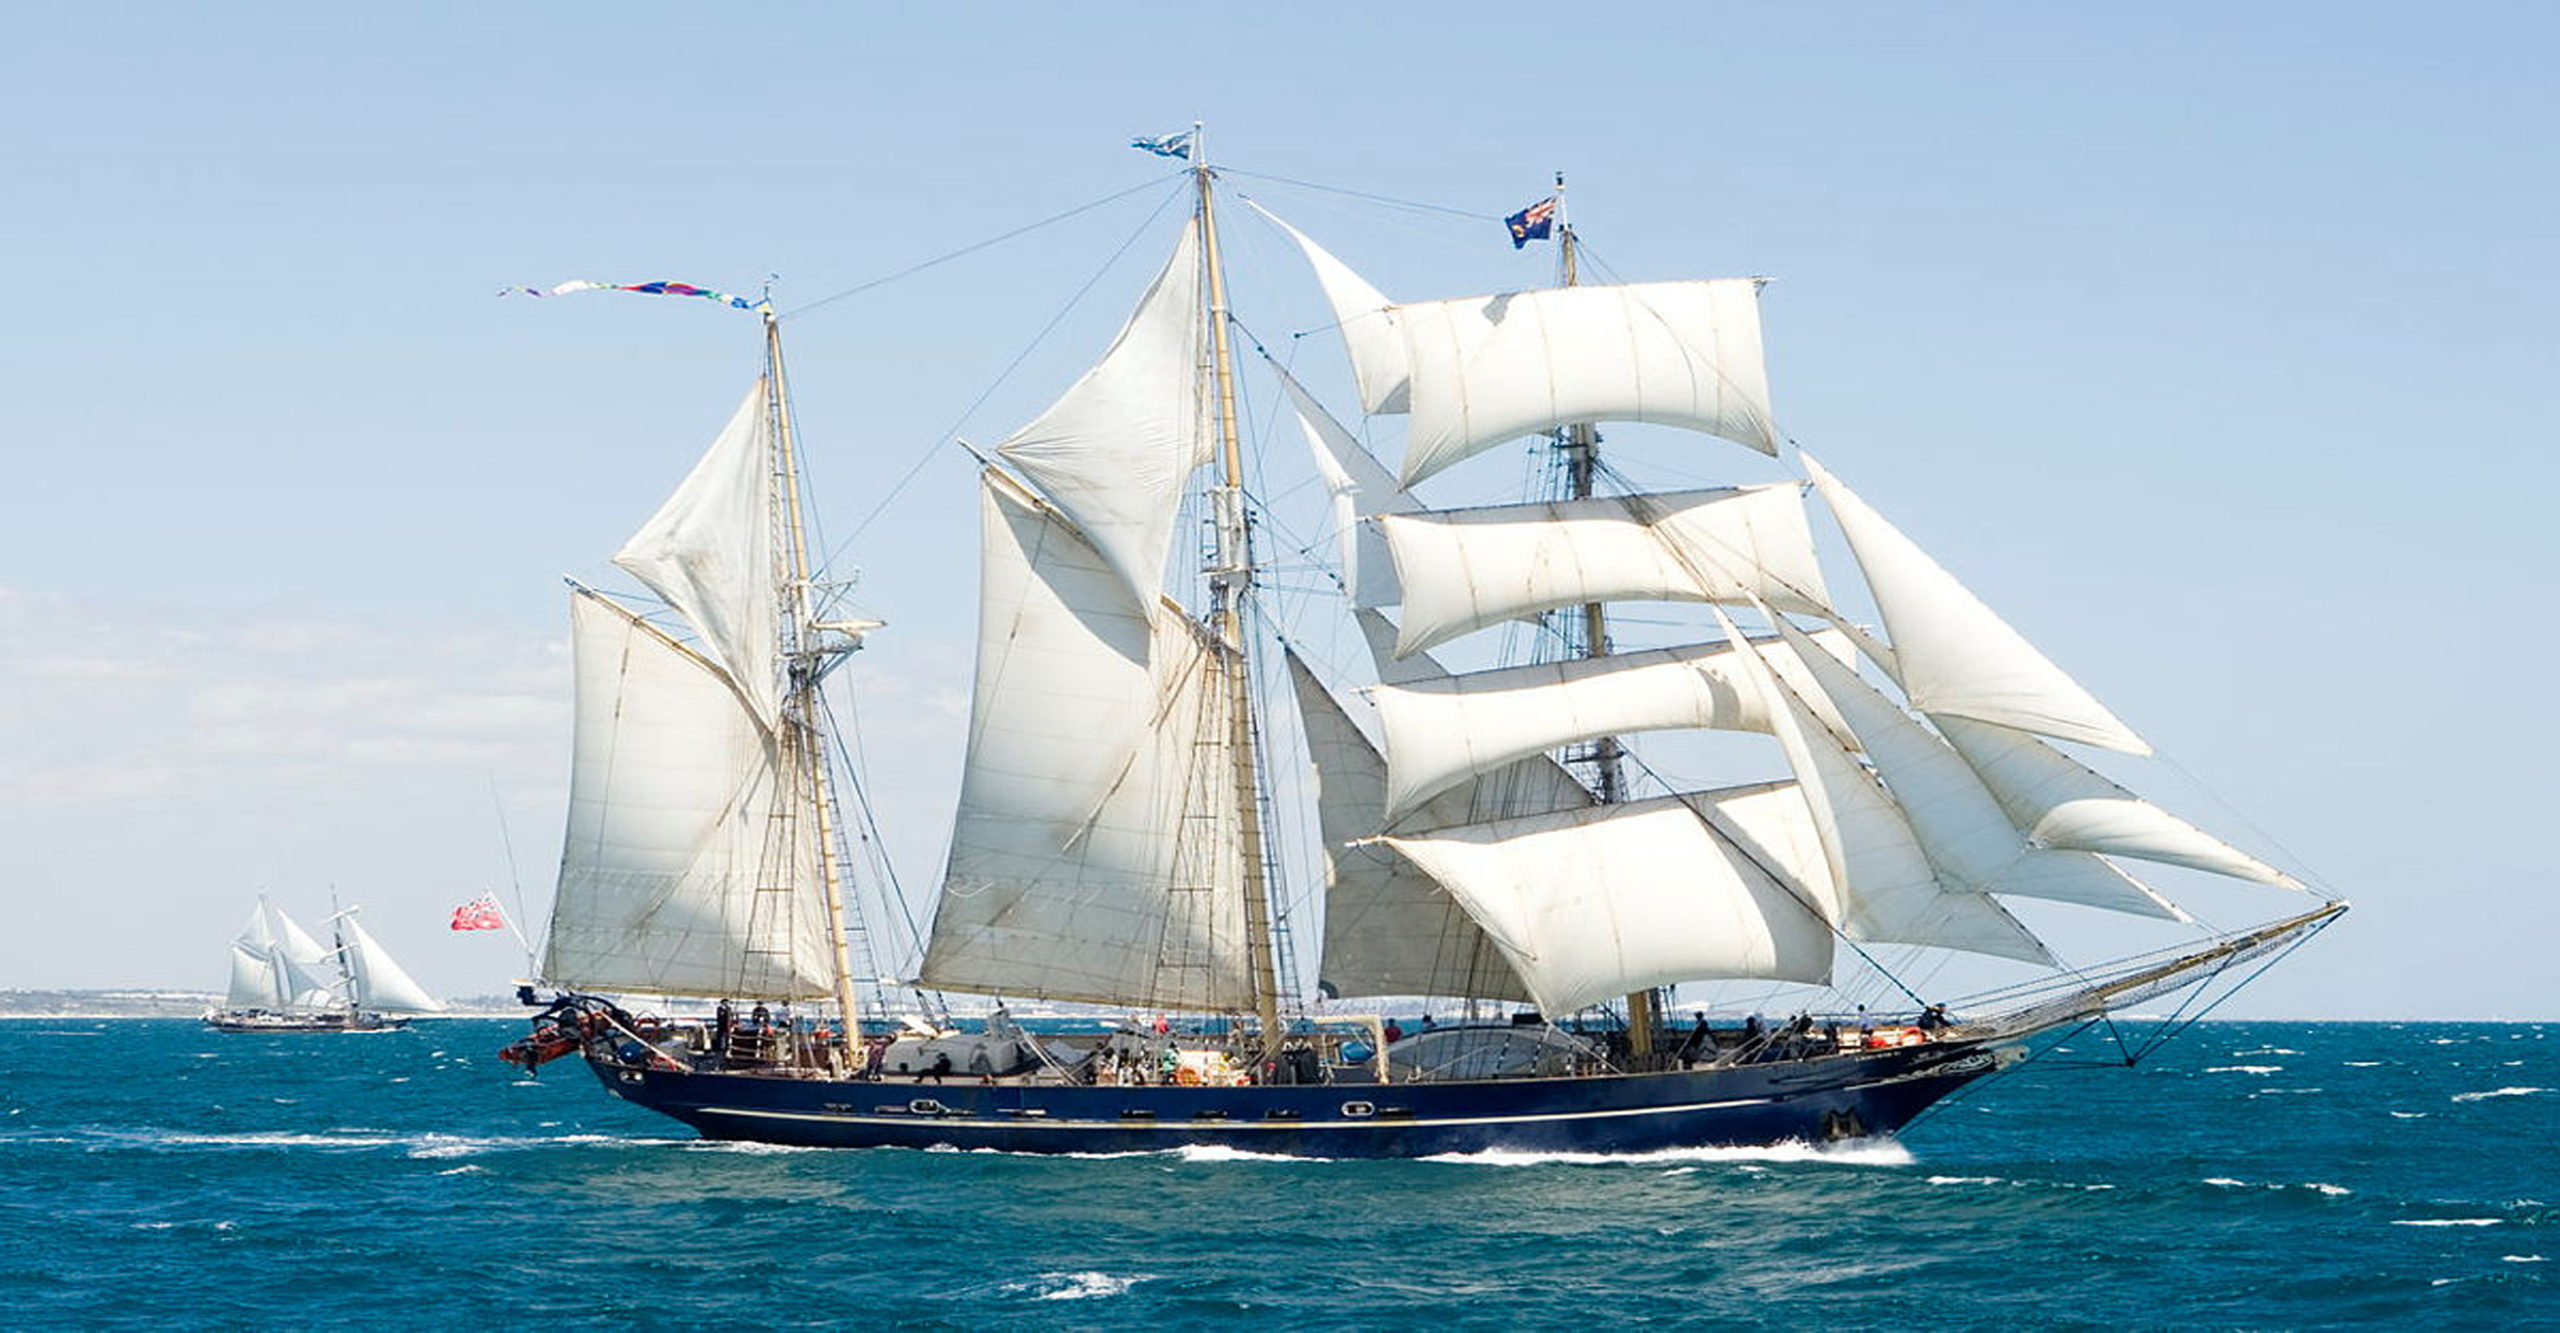 Leeuwin II in the Tall Ship Regatta off the coast of Fremantle